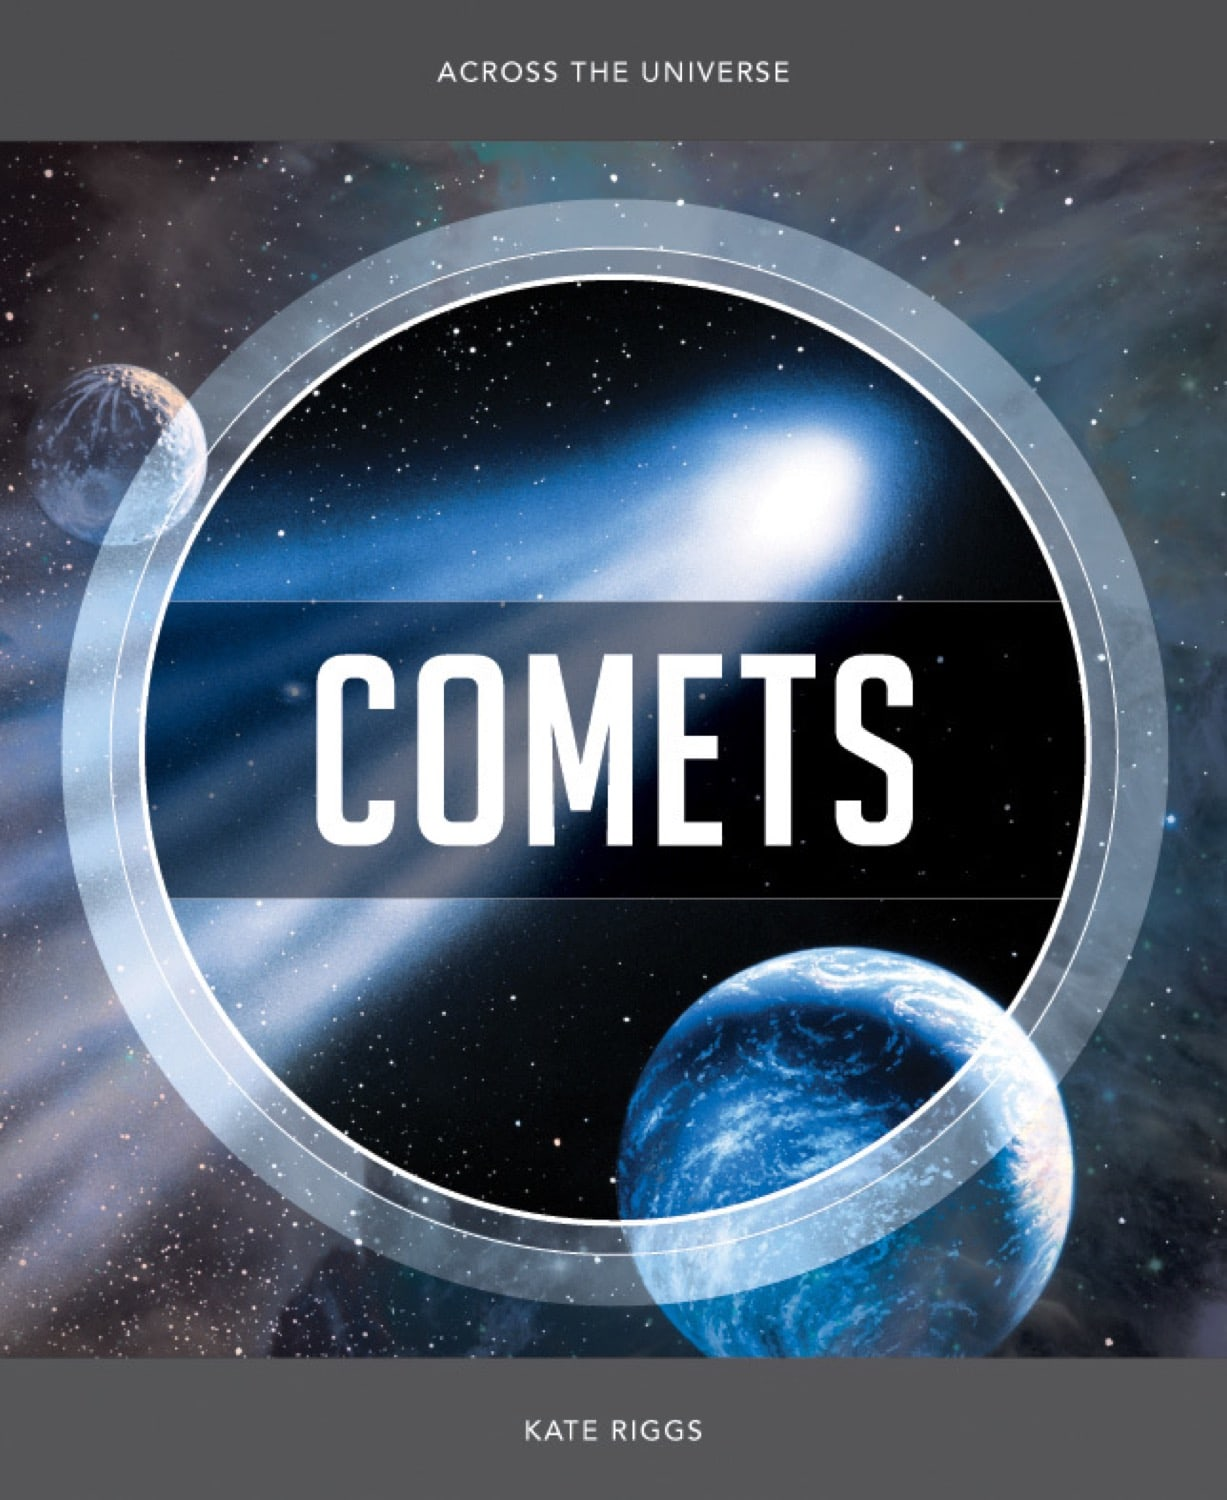 Across the Universe: Comets